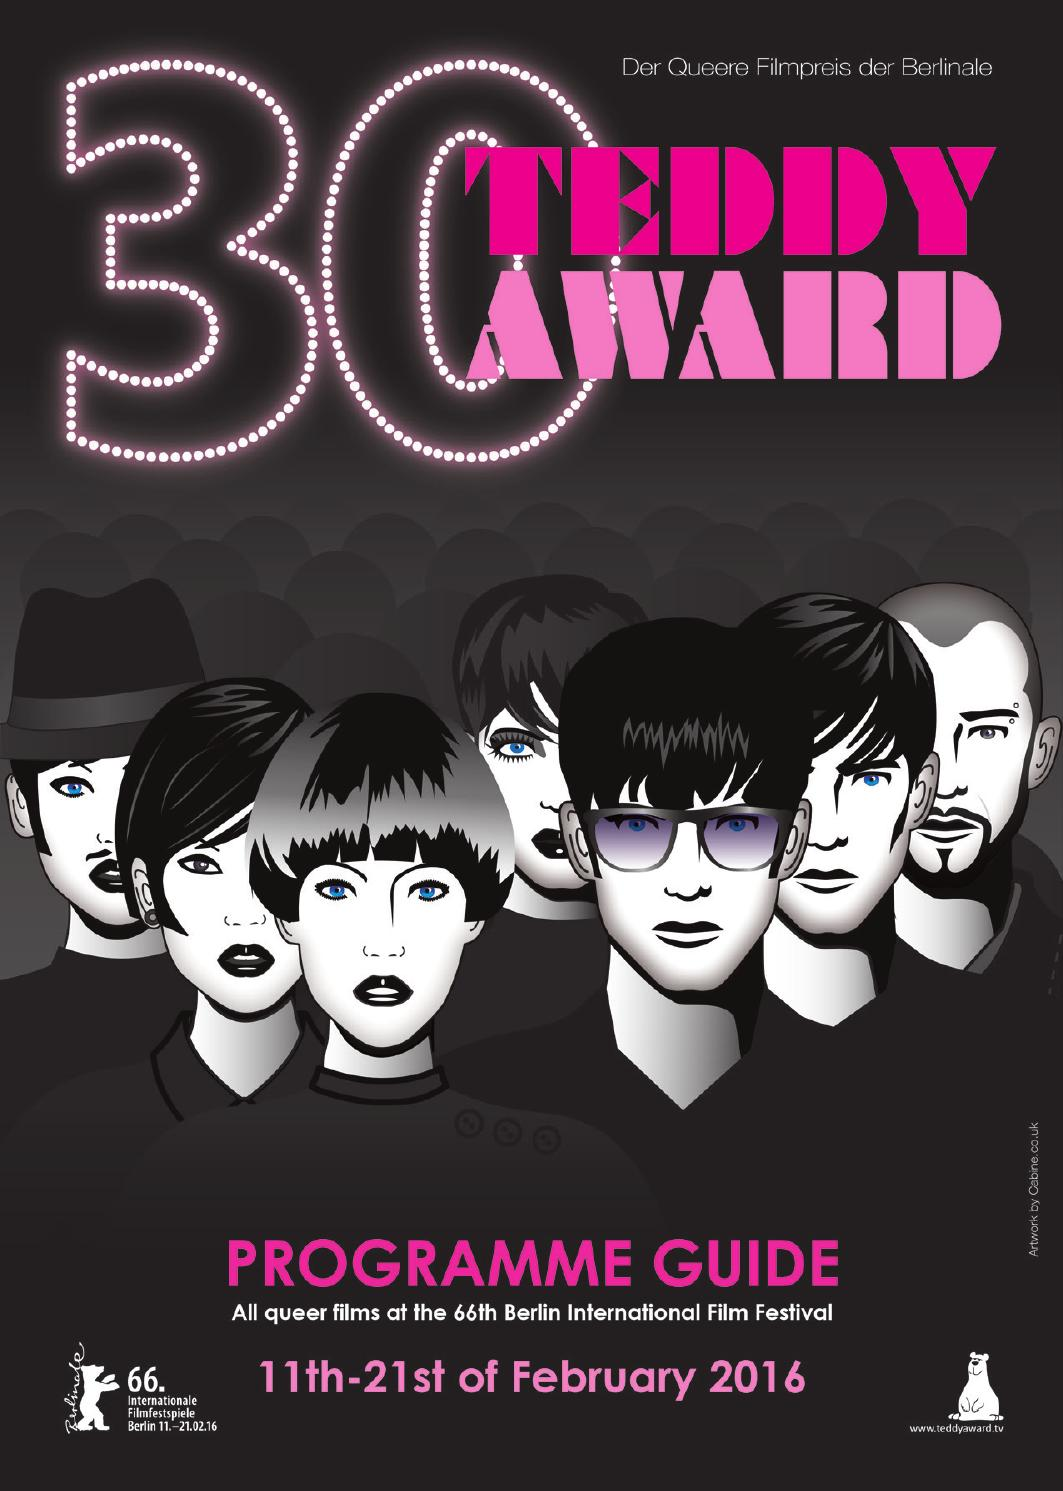 TEDDY AWARD Programme Guide 2016 by TEDDY AWARD, Queer Film Award ...